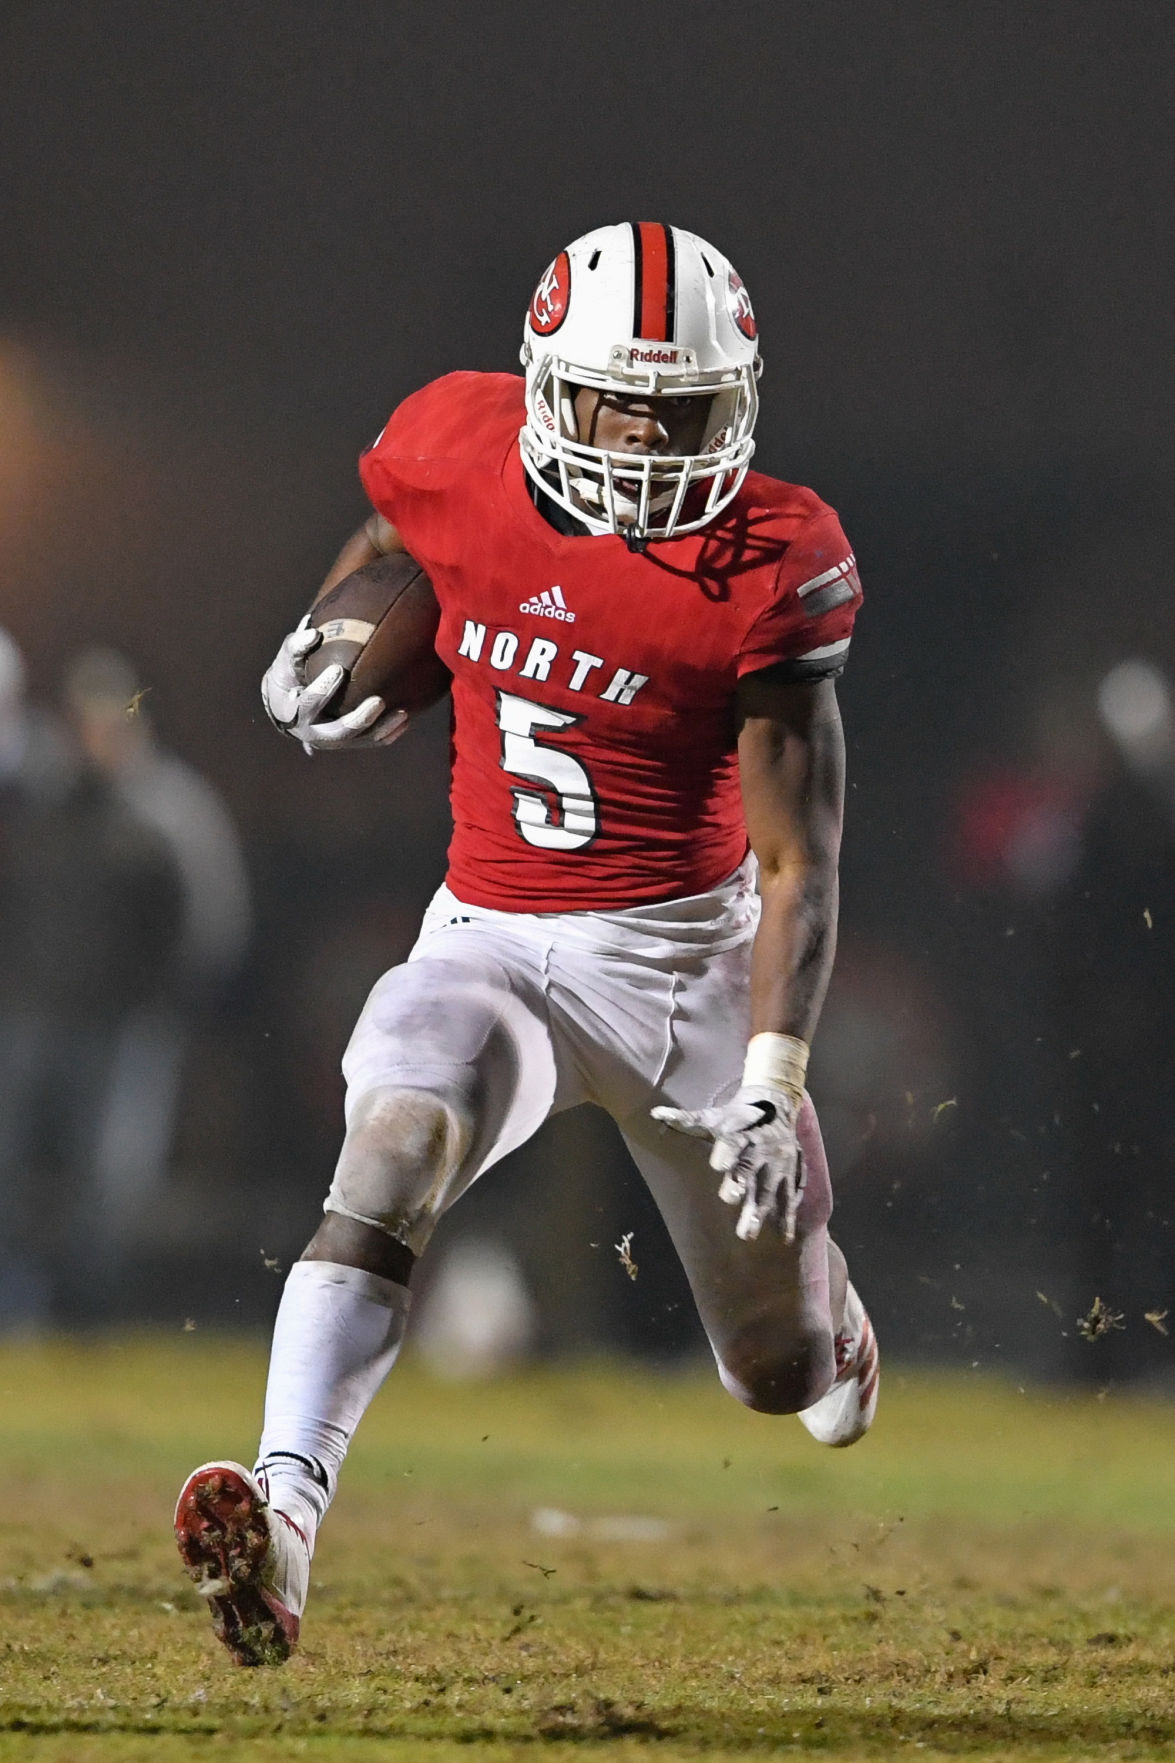 North Gwinnett S Goodson Steps Forward To Become Workhorse Runner In